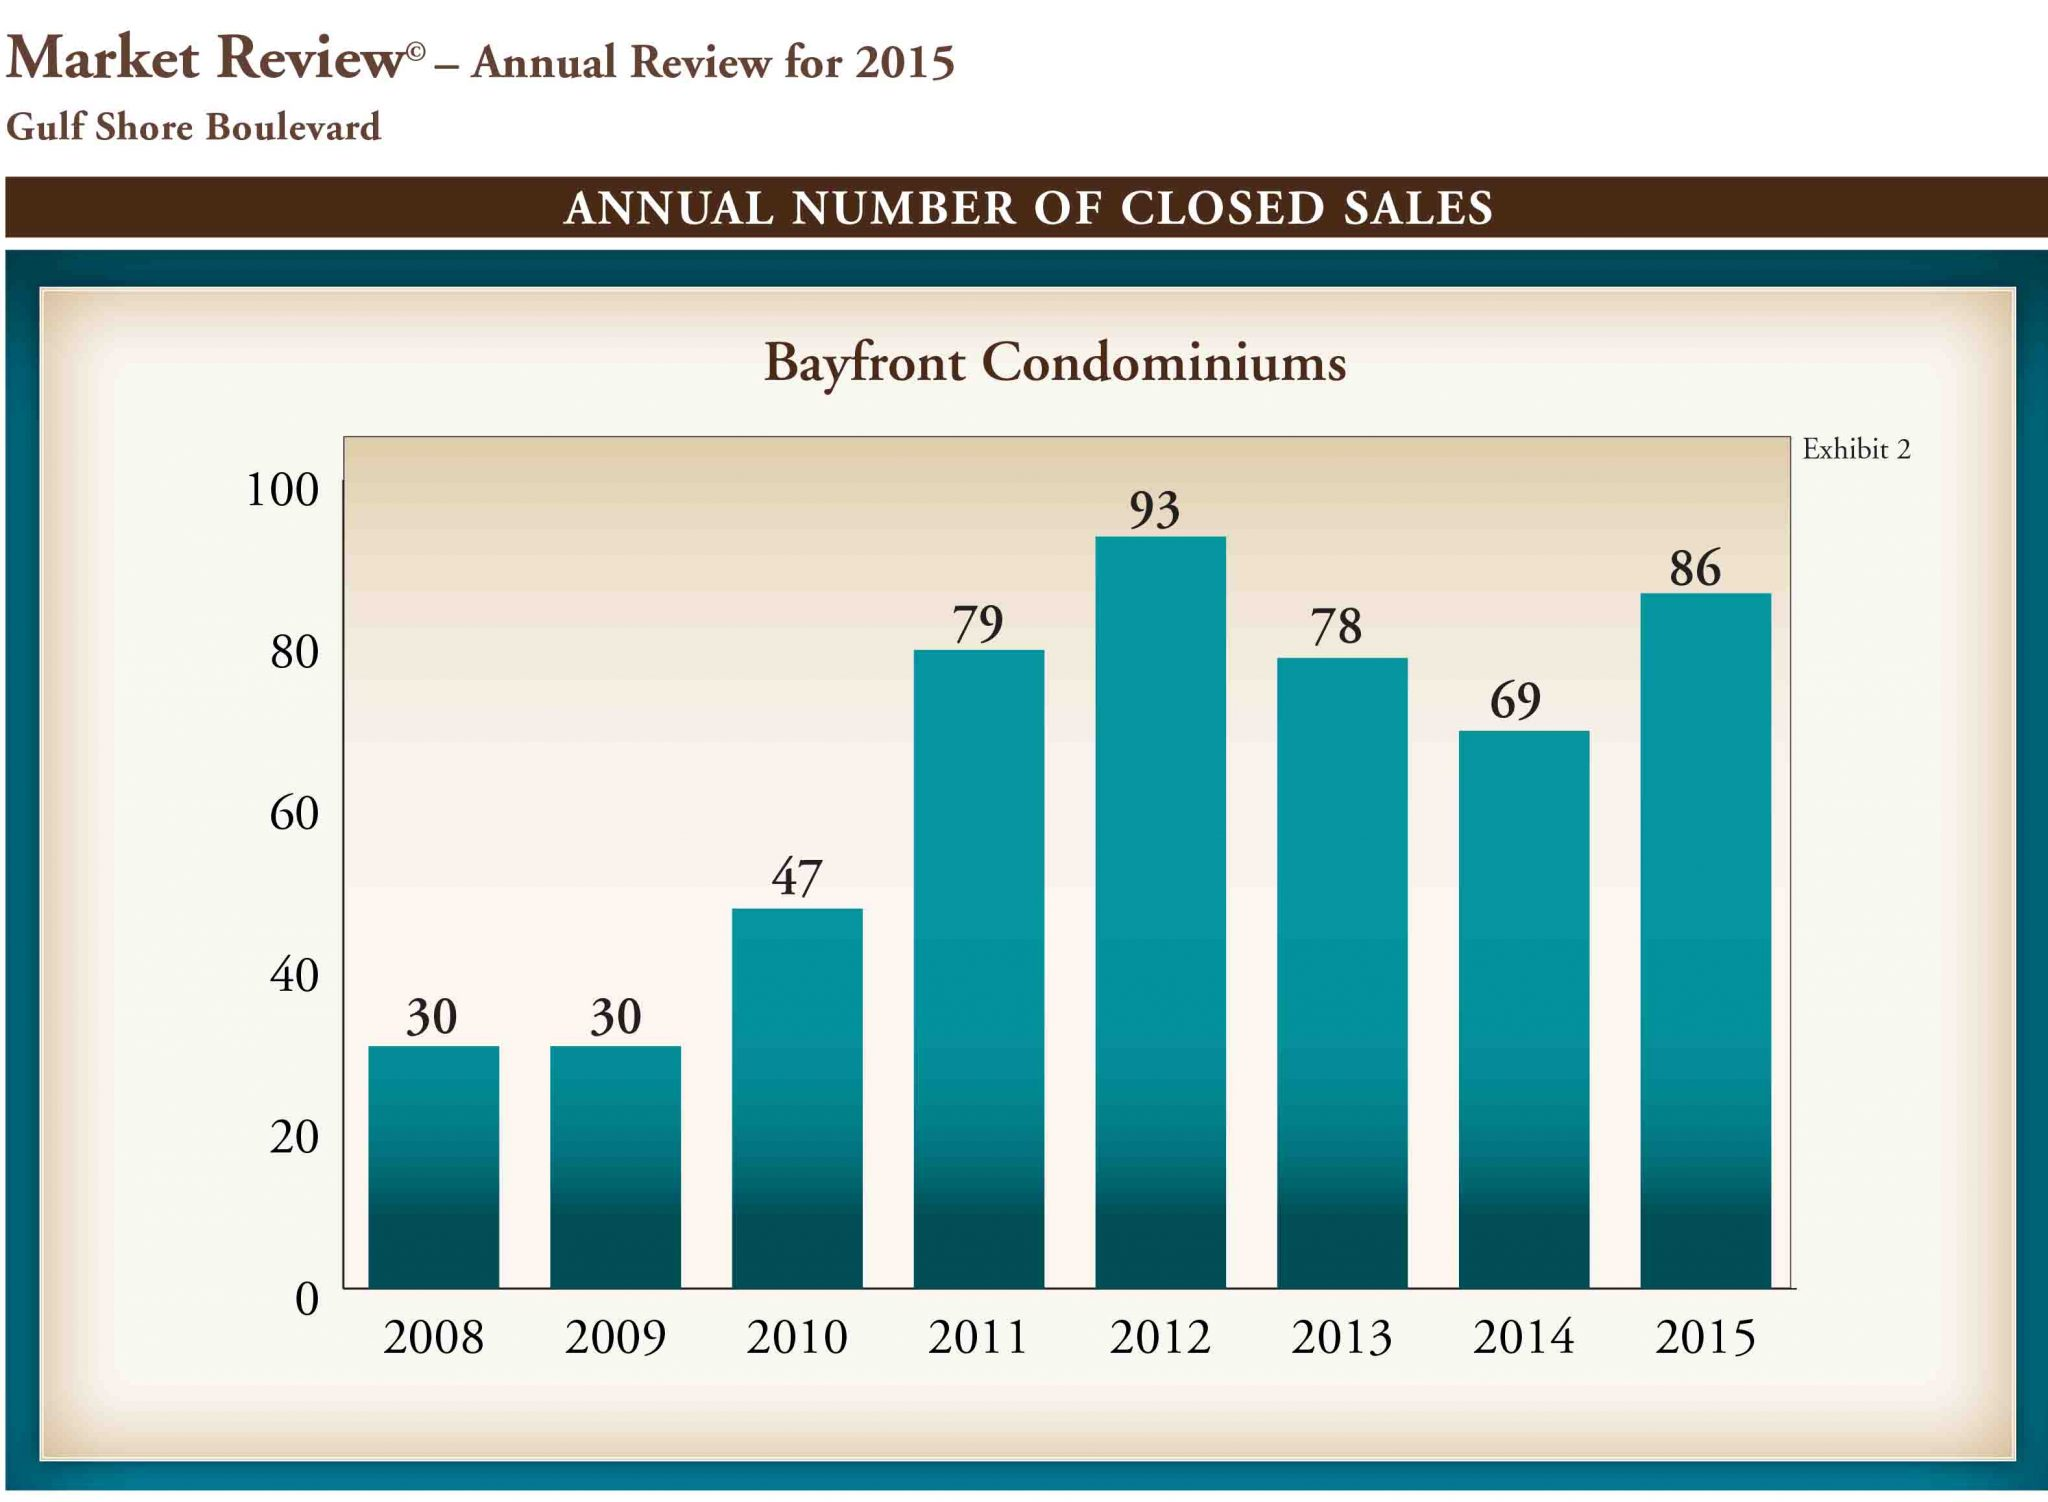 Gulf Shore Blvd Annual Market Review 2015.indd